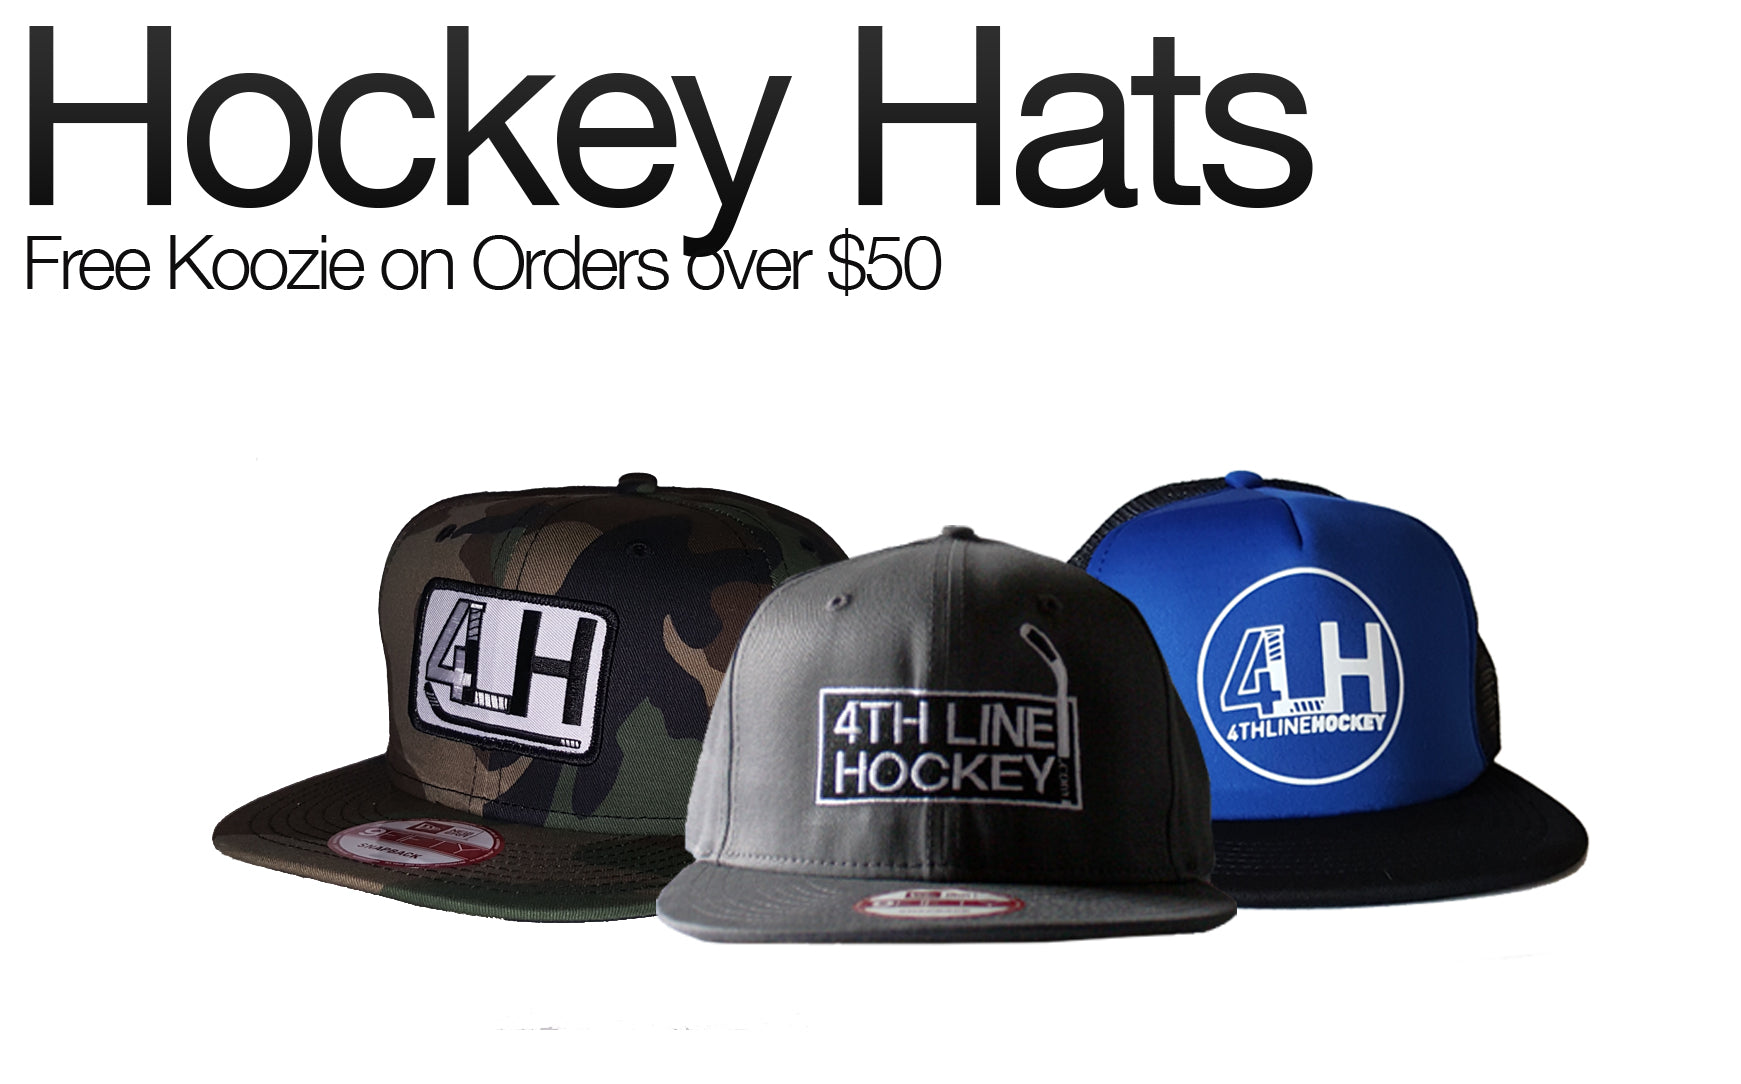 Hockey Hats - Free Koozie on Orders over $50